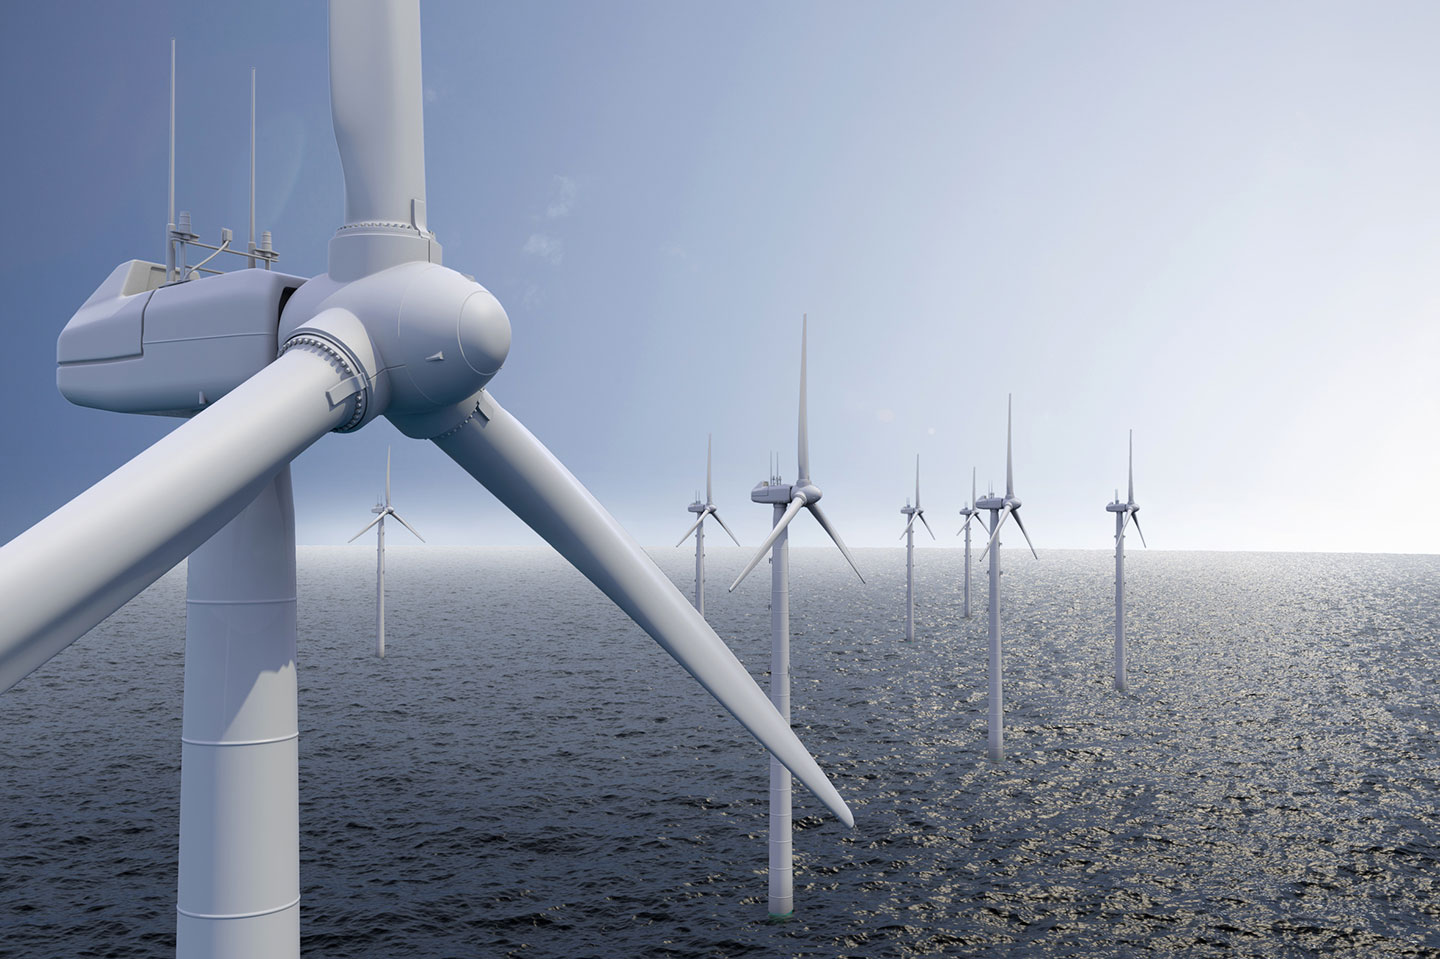 Blum-Novotest is also represented in the wind power and energy sector